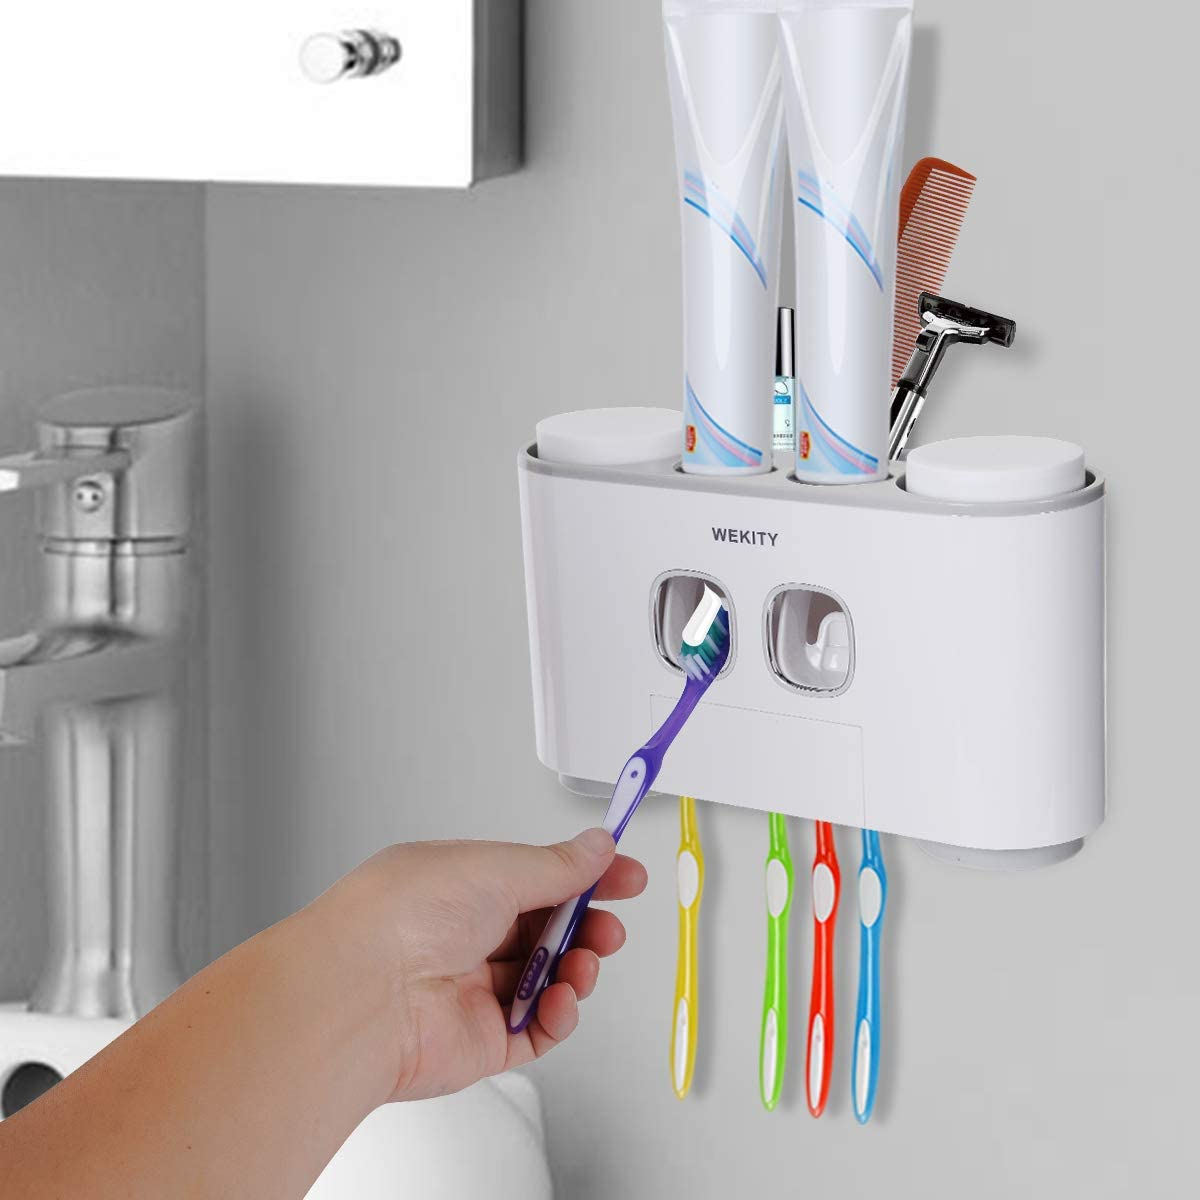 Amazon Com Wekity Toothbrush Holder Multifunctional Wall Mounted Space Saving Toothbrush And Toothpaste Squeezer Kit With Dustproof Cover 5 Toothbrush Slots 2 Automatic Toothpaste Dispenser And 4 Cups Grey Home Kitchen